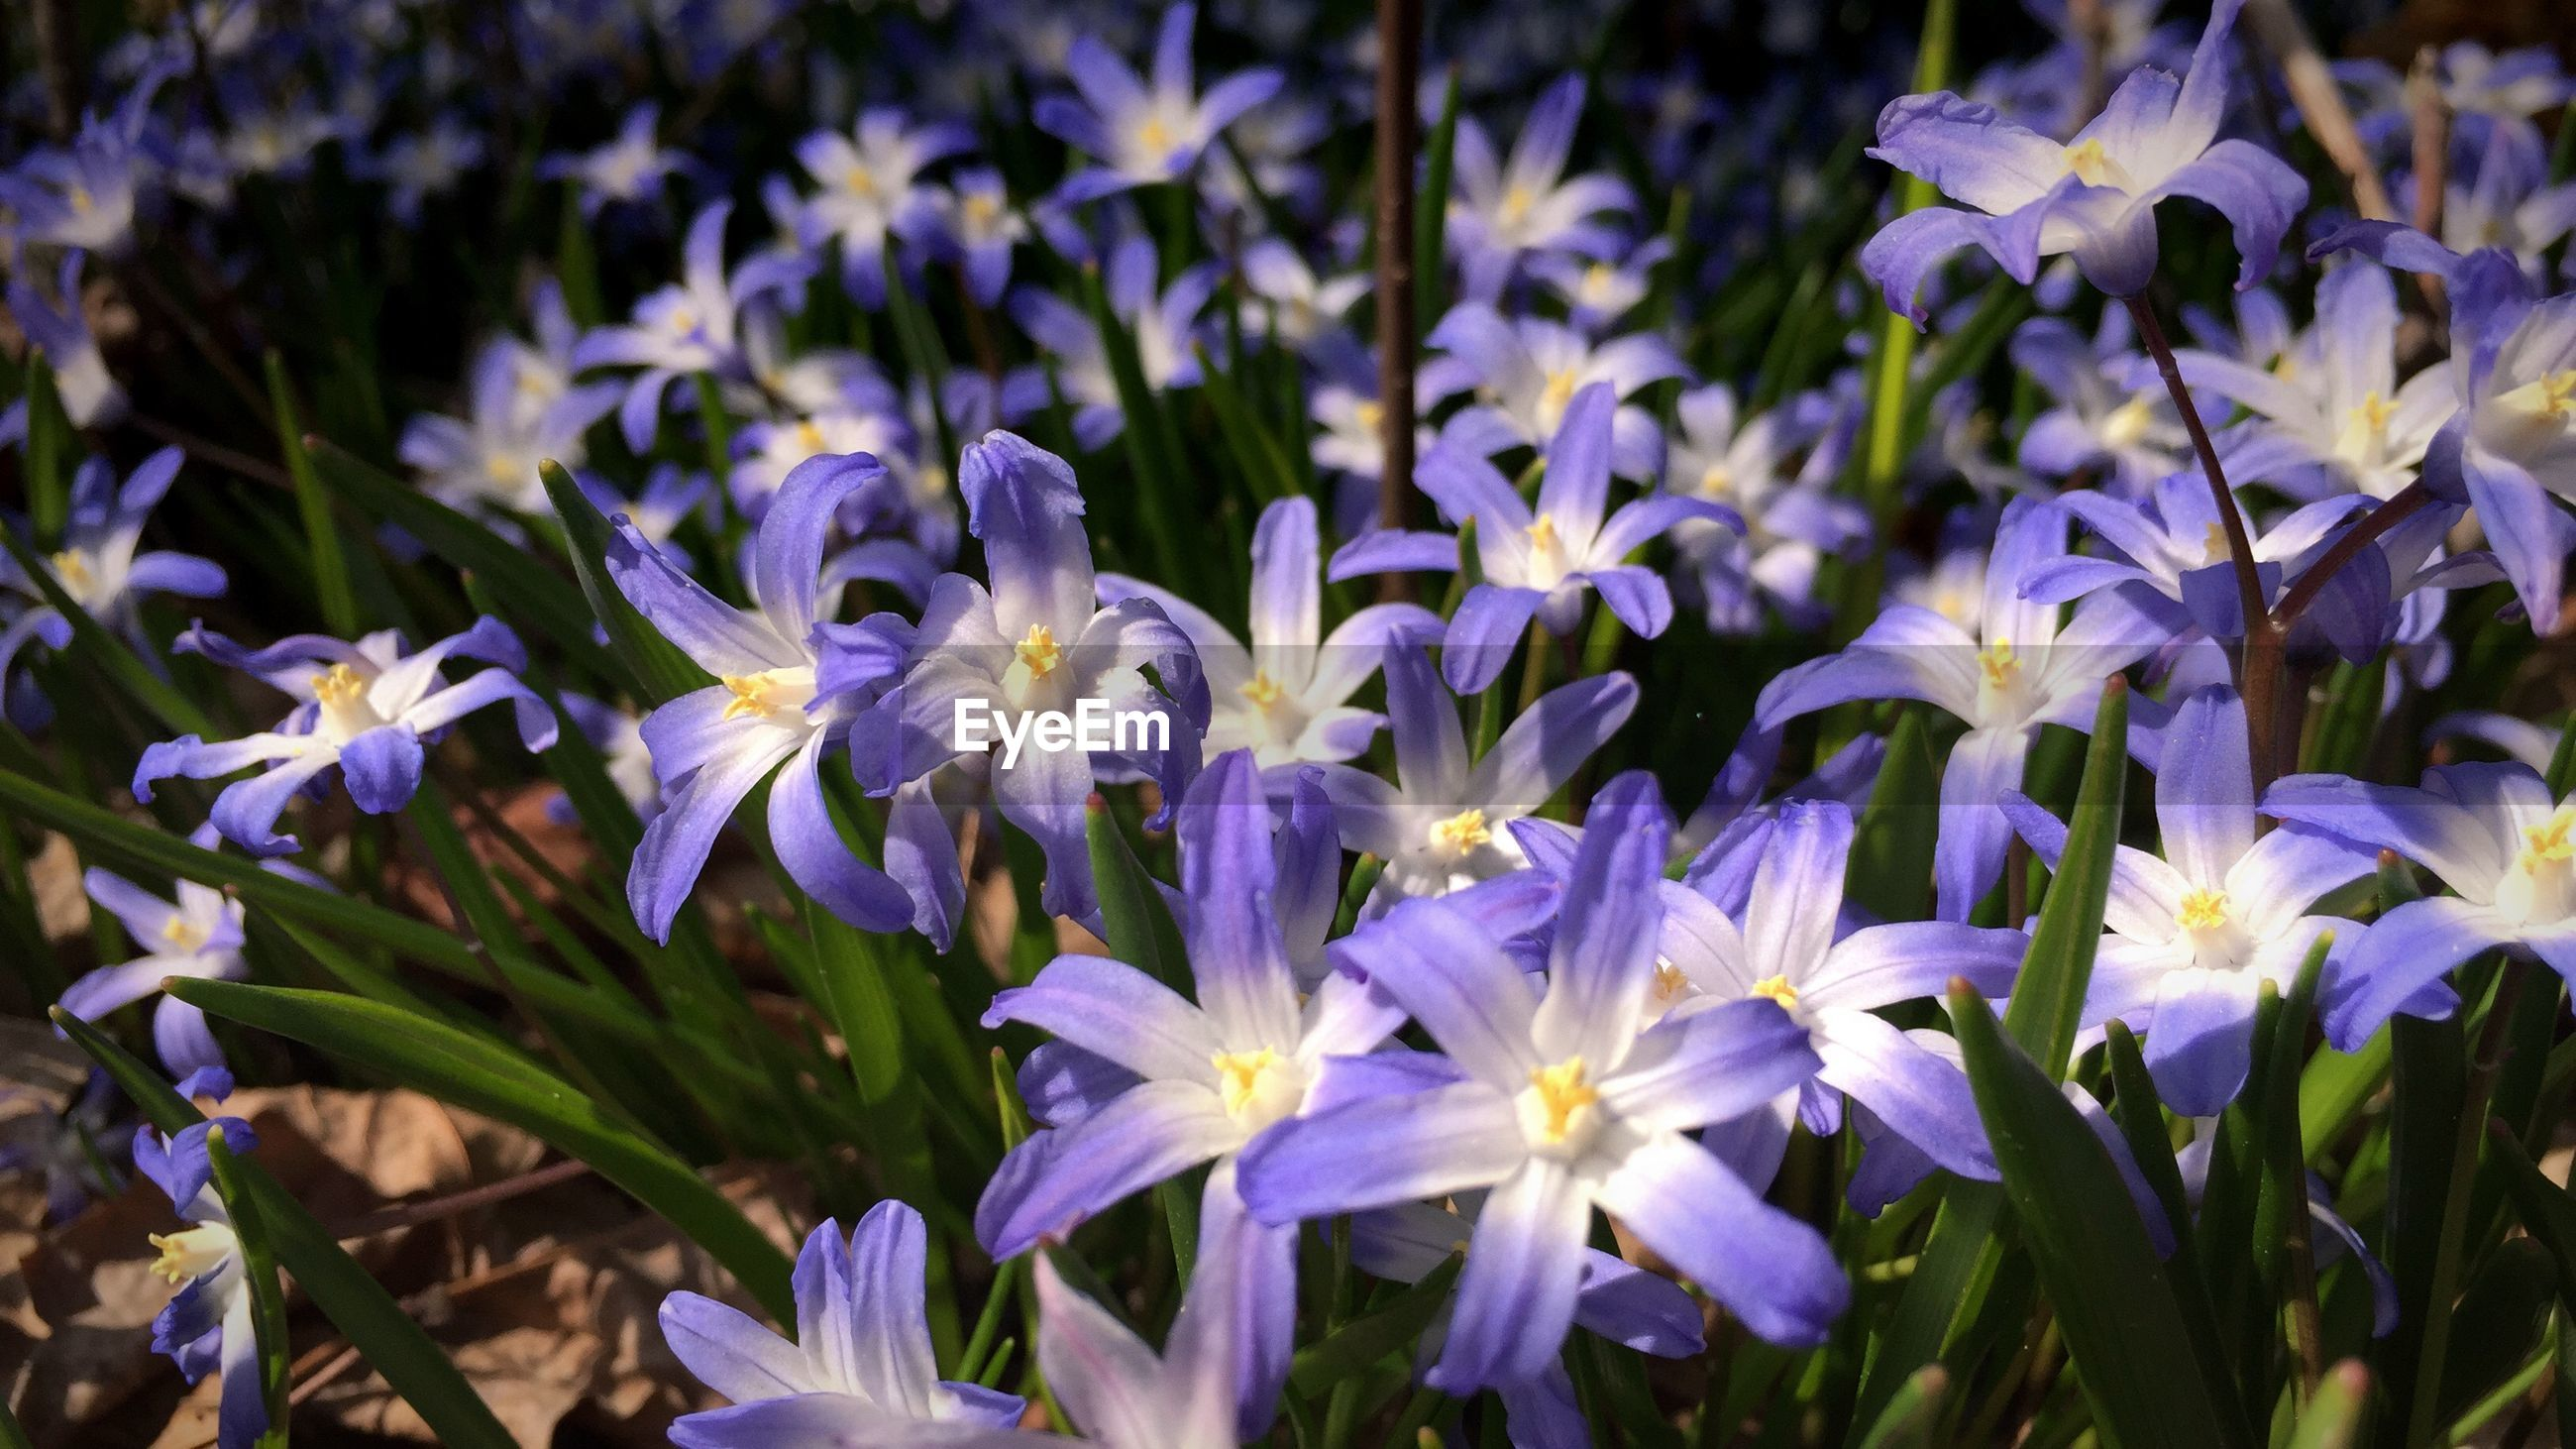 Close up of purple flowers in bloom